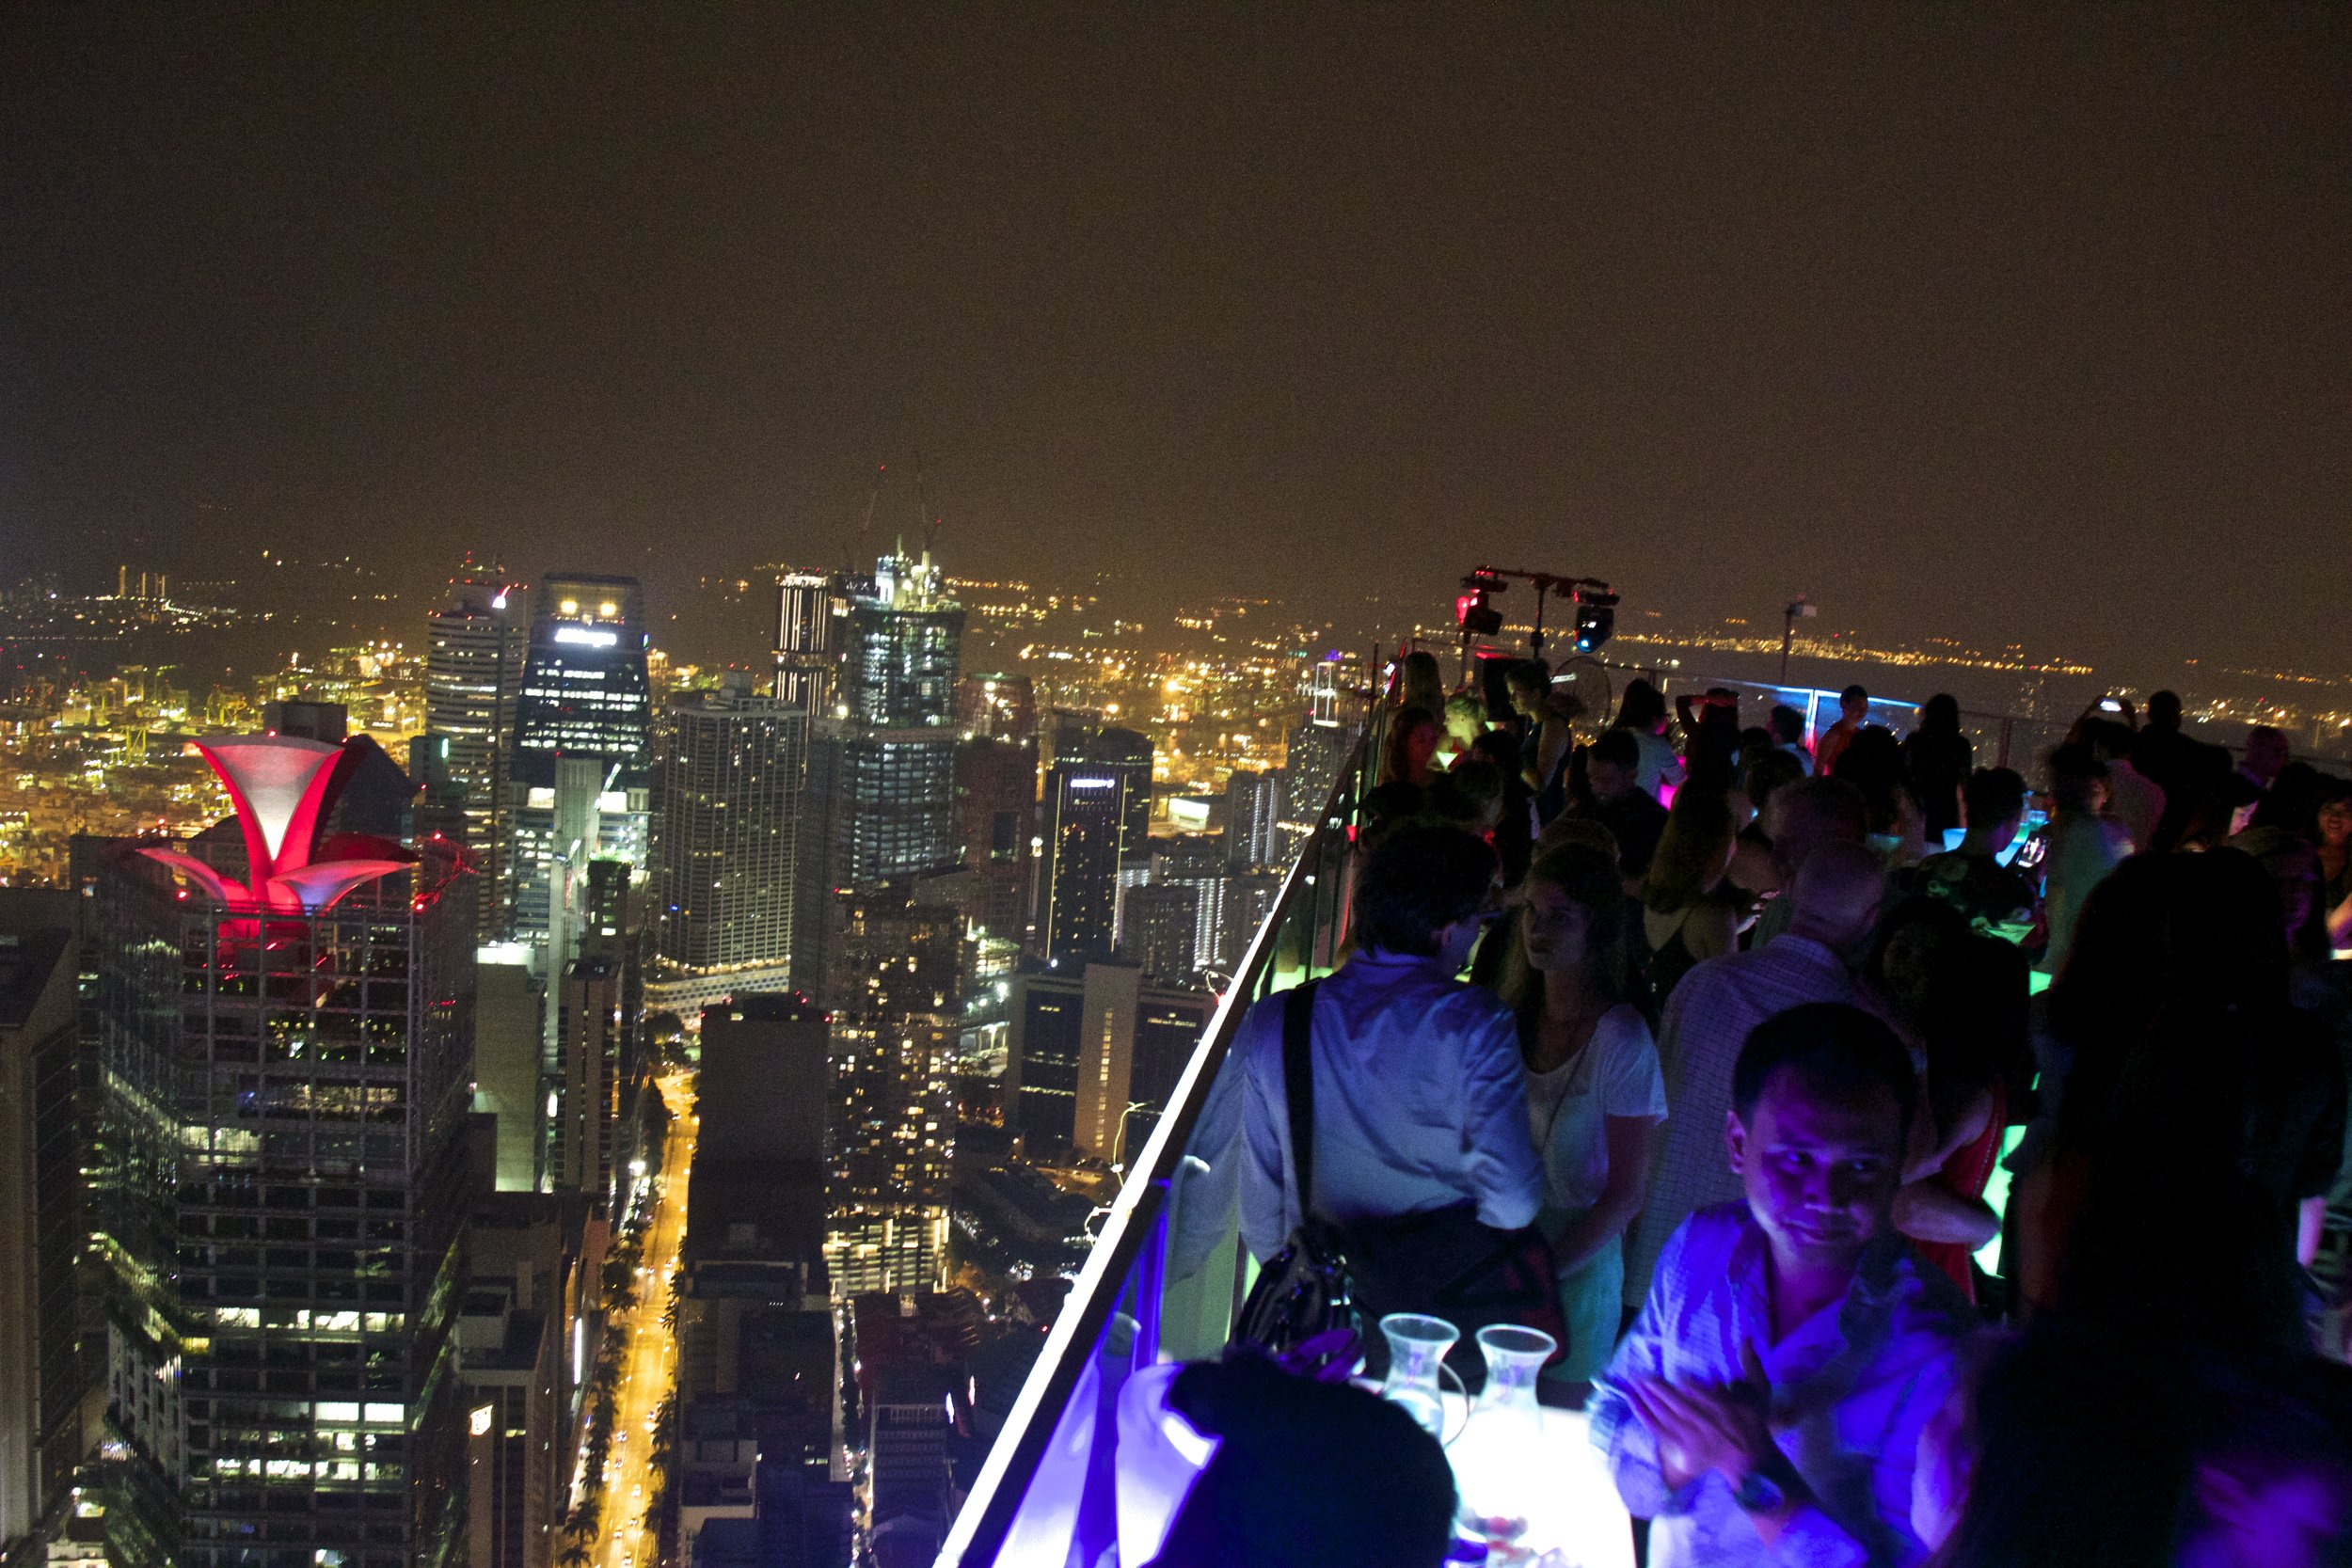 1 Altitude Rooftop Open Air Bar Singapore Nightlife 1.jpg